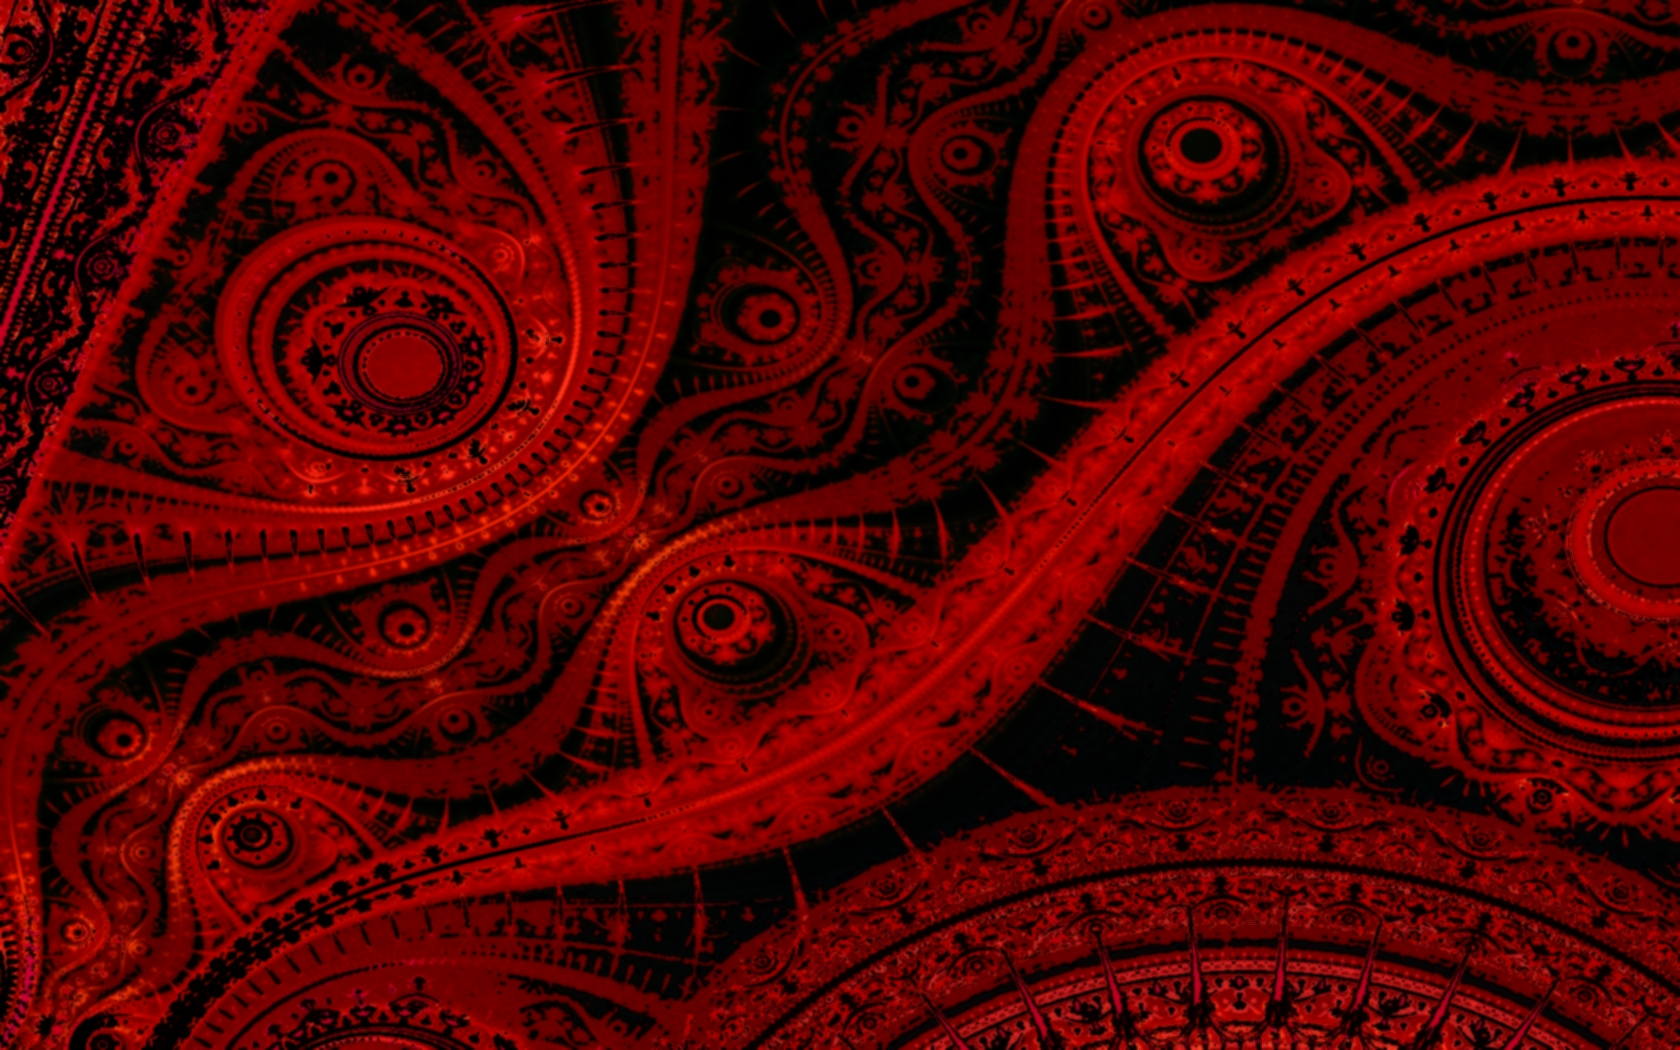 Red Backgrounds Hd Hd Wallpapers Hd Backgrounds Tumblr Backgrounds Images Pictures